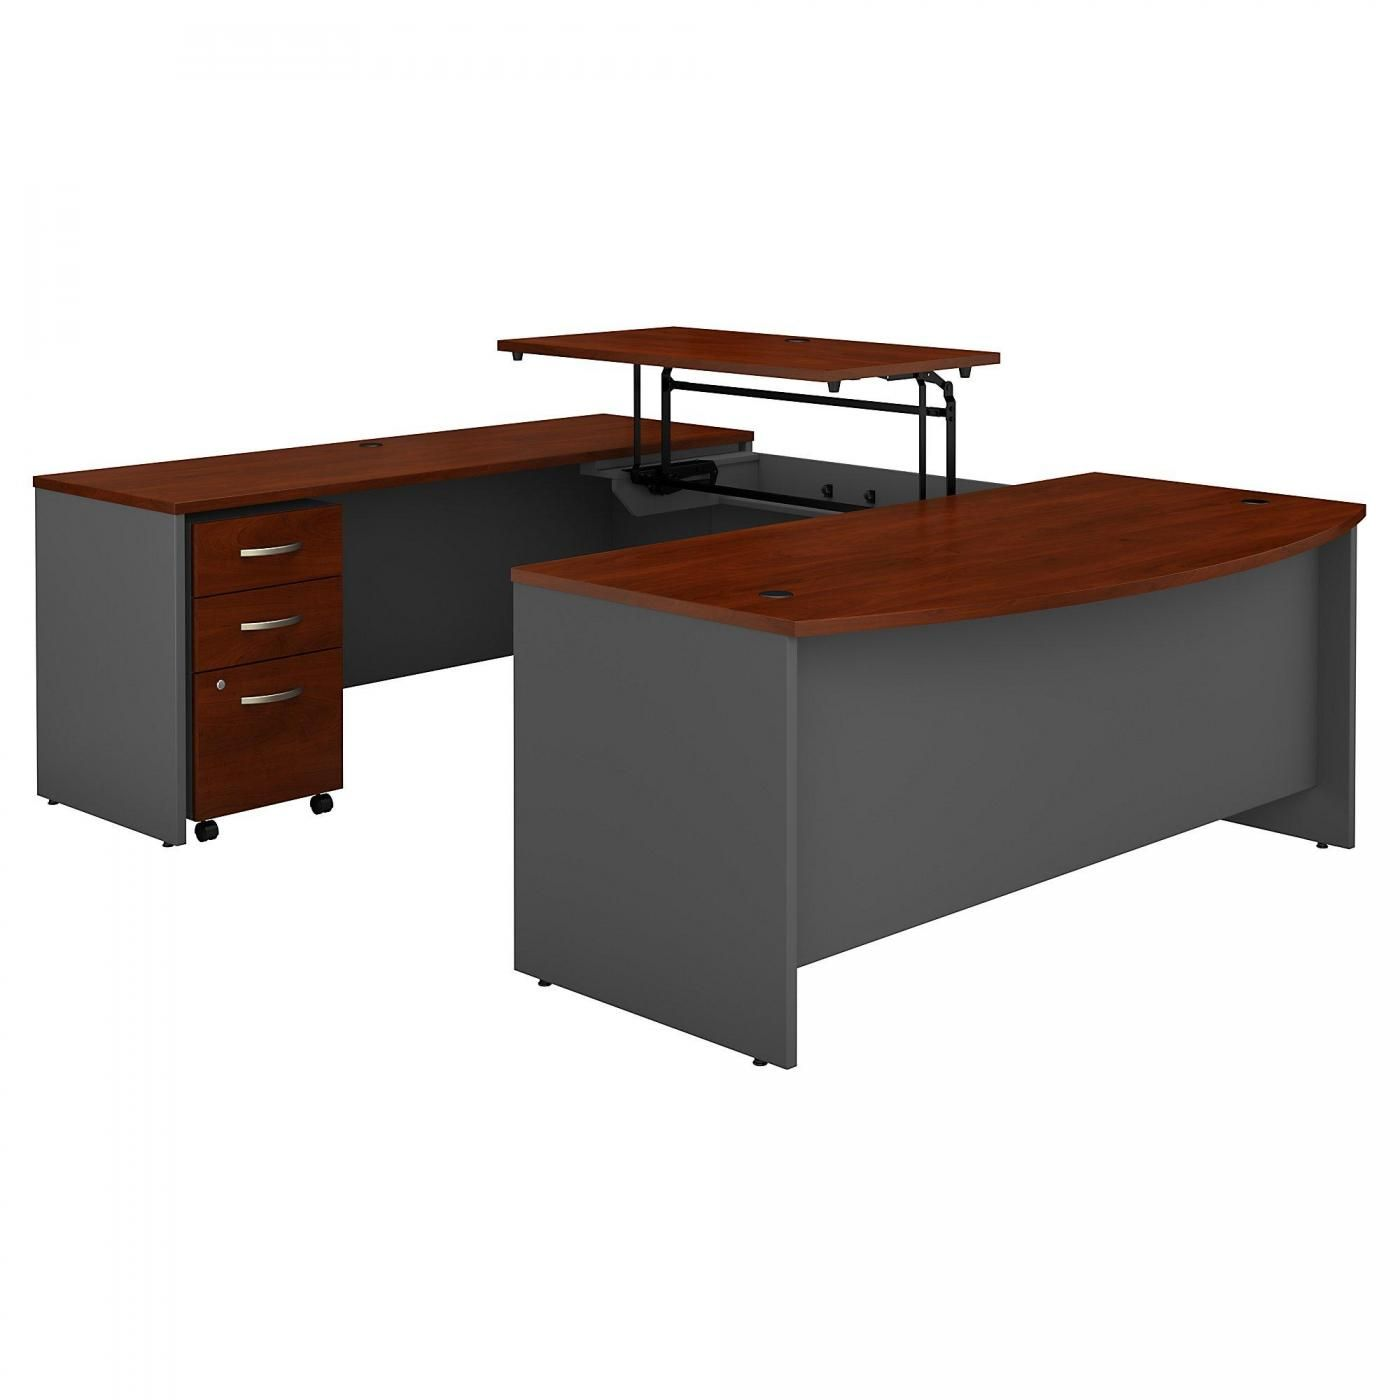 <font color=#c60><b>BUSH BUSINESS FURNITURE SERIES C 72W X 36D 3 POSITION SIT TO STAND BOW FRONT U SHAPED DESK WITH MOBILE FILE CABINET. FREE SHIPPING</font></b>